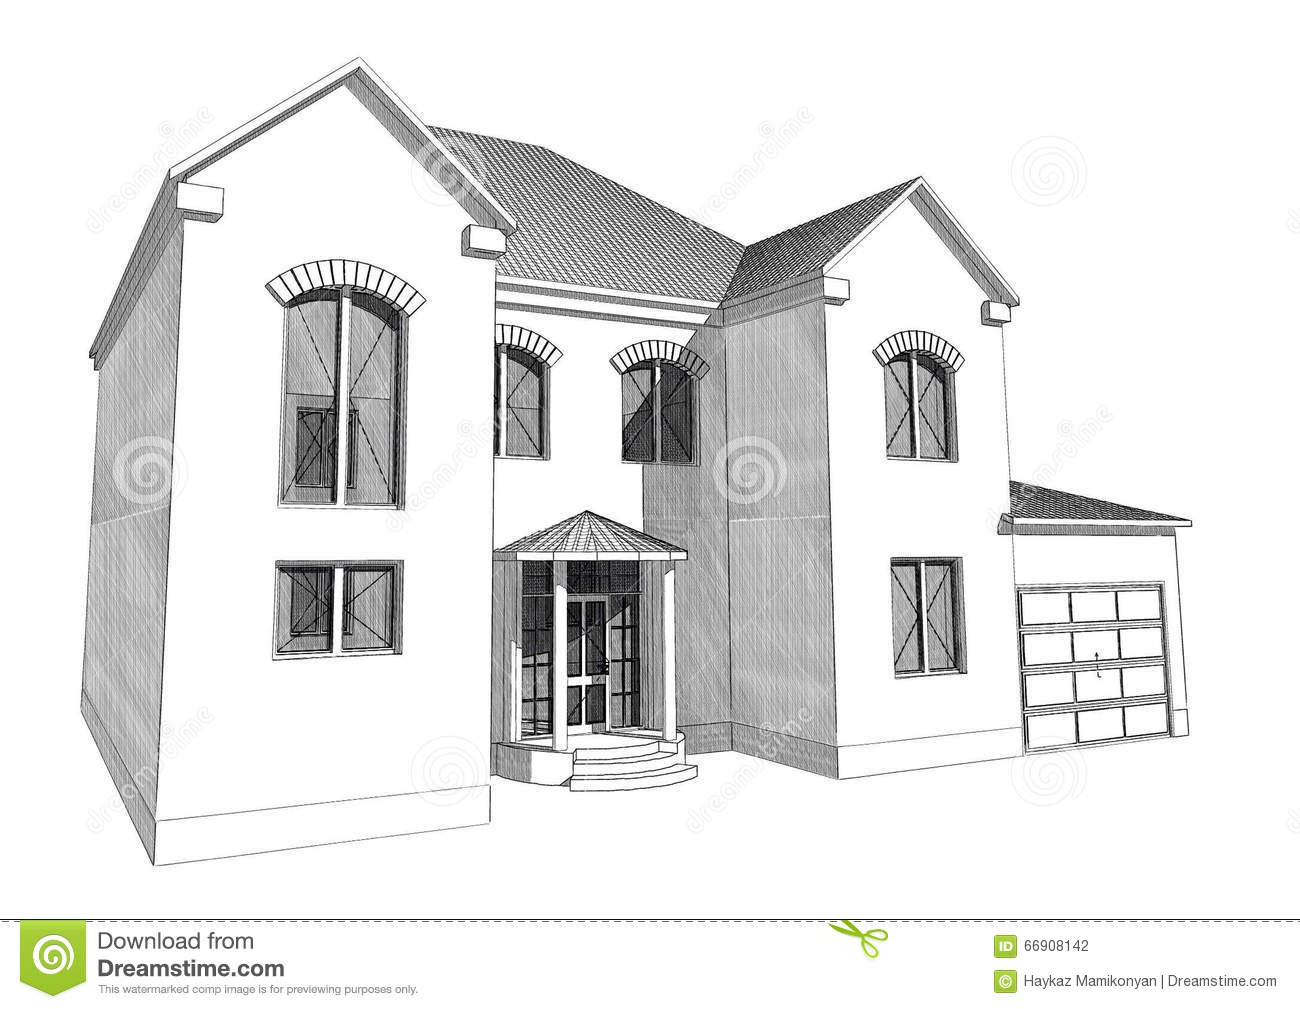 Marvelous Residential House 3D. Design, Photoshop.